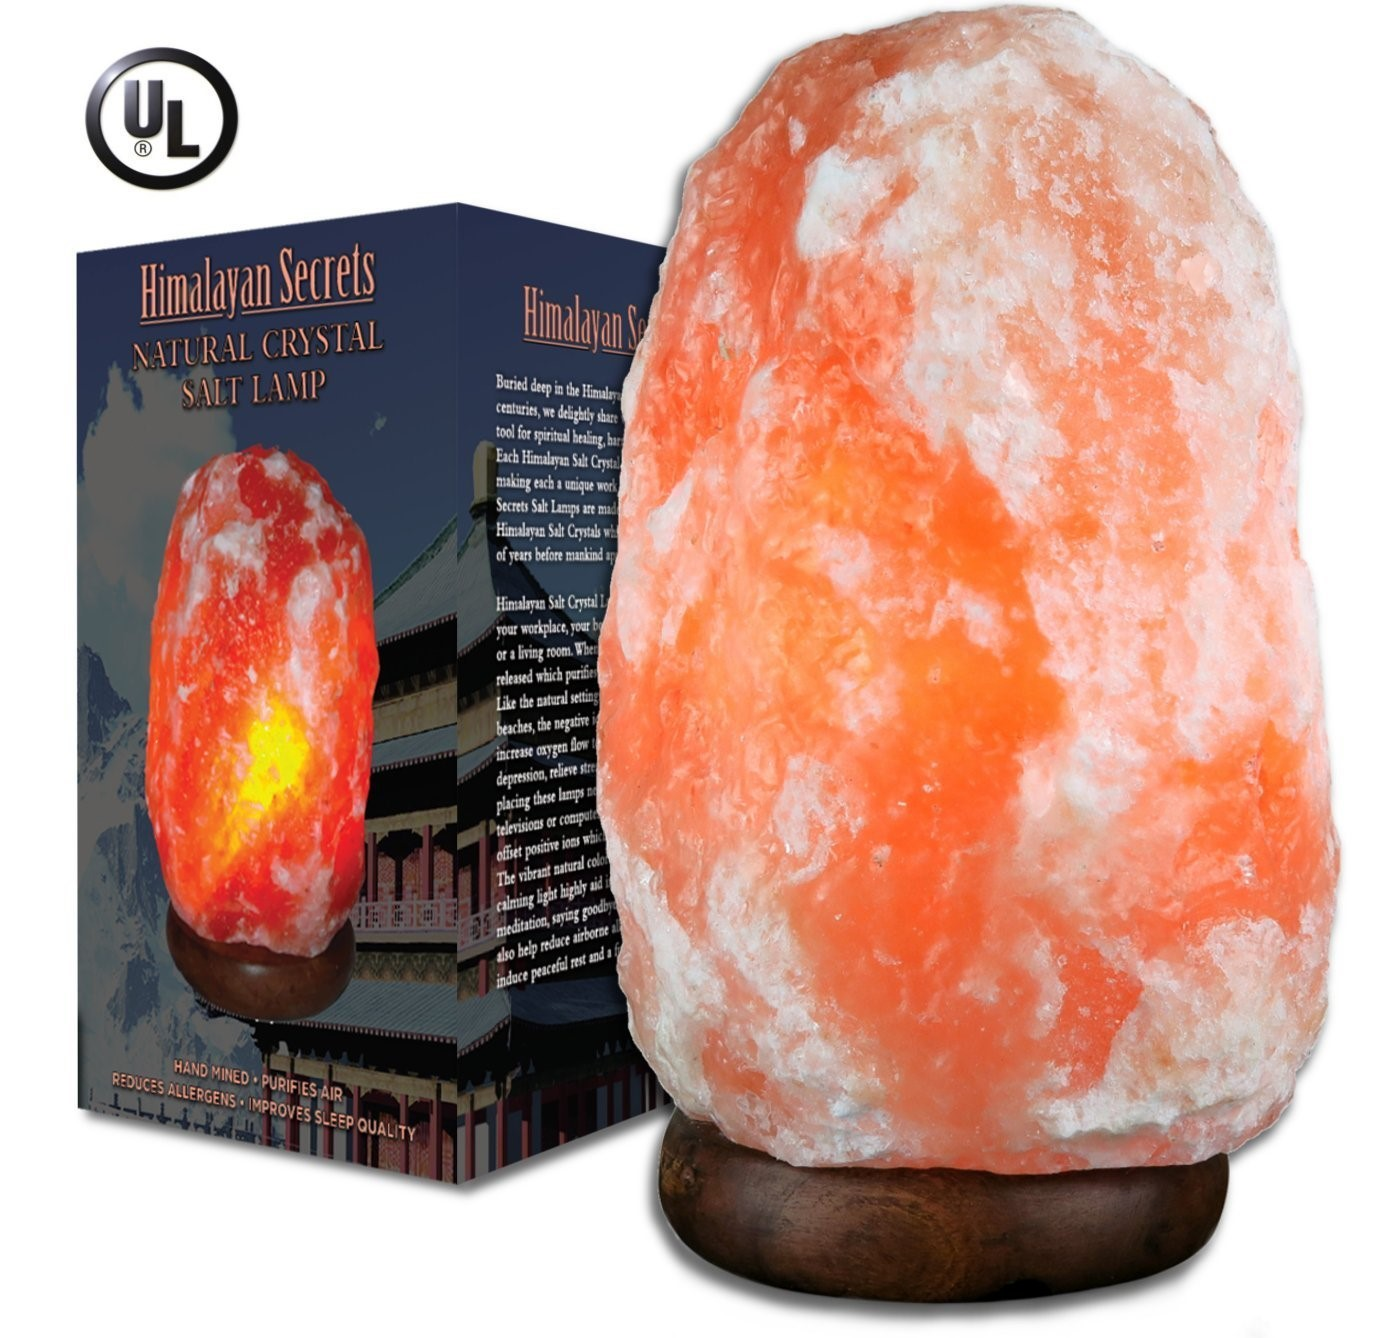 Natural Salt Lamp 9 to 12 lb by Himalayan Secrets LLC